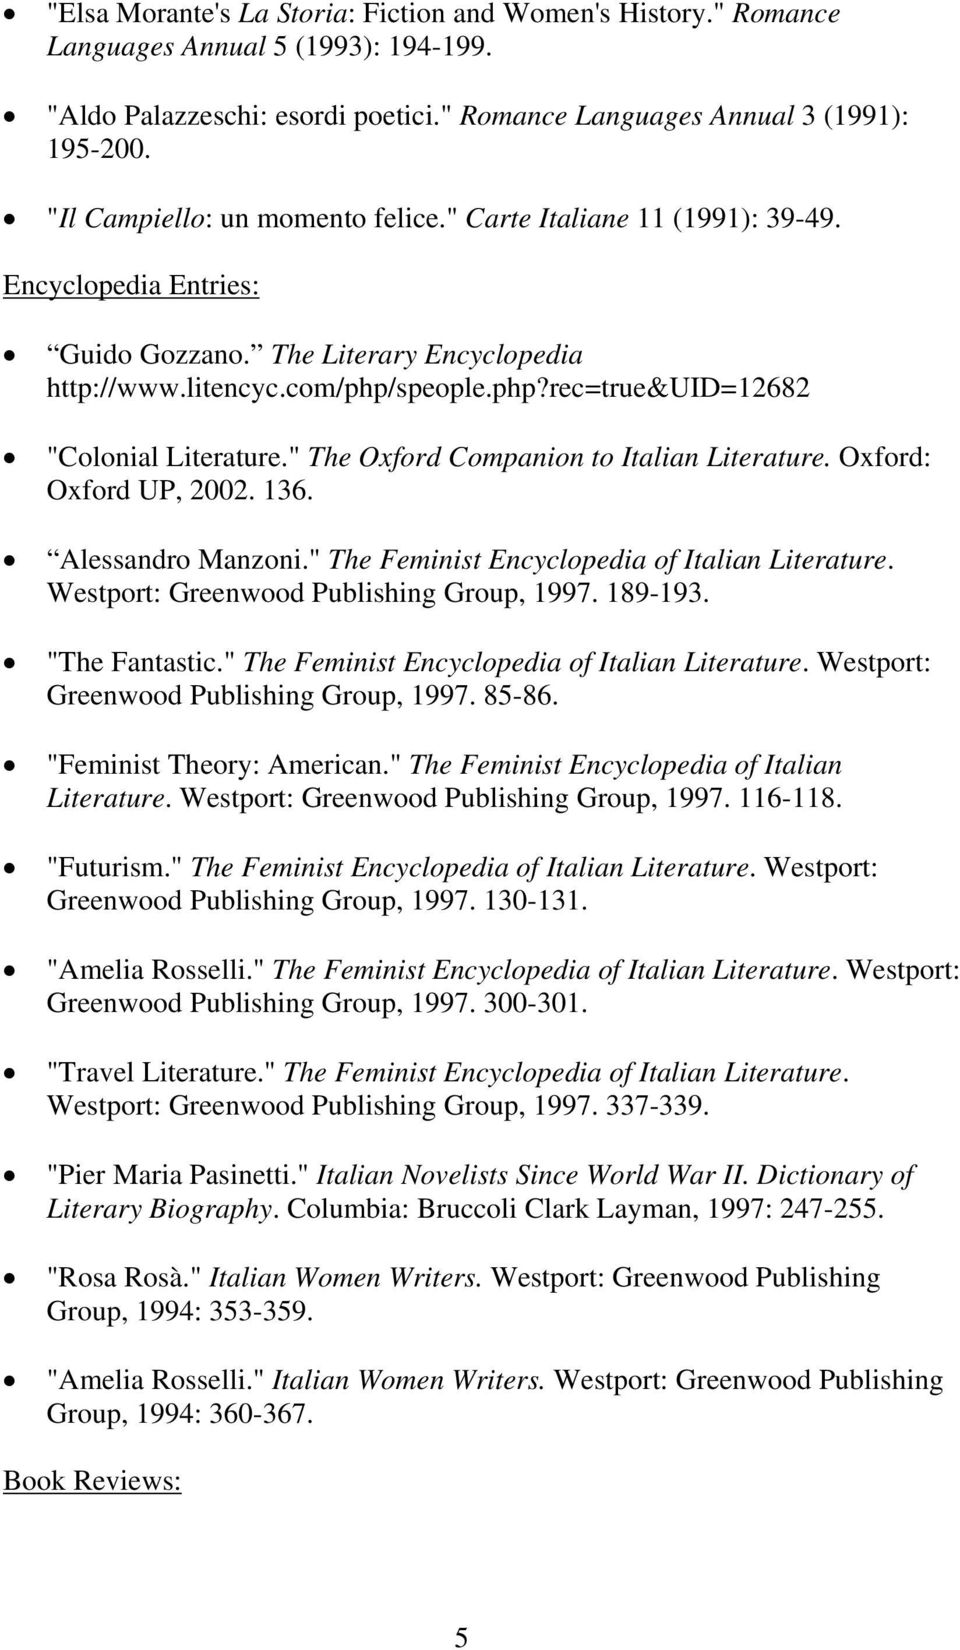 """ The Oxford Companion to Italian Literature. Oxford: Oxford UP, 2002. 136. Alessandro Manzoni."" The Feminist Encyclopedia of Italian Literature. Westport: Greenwood Publishing Group, 1997. 189-193."